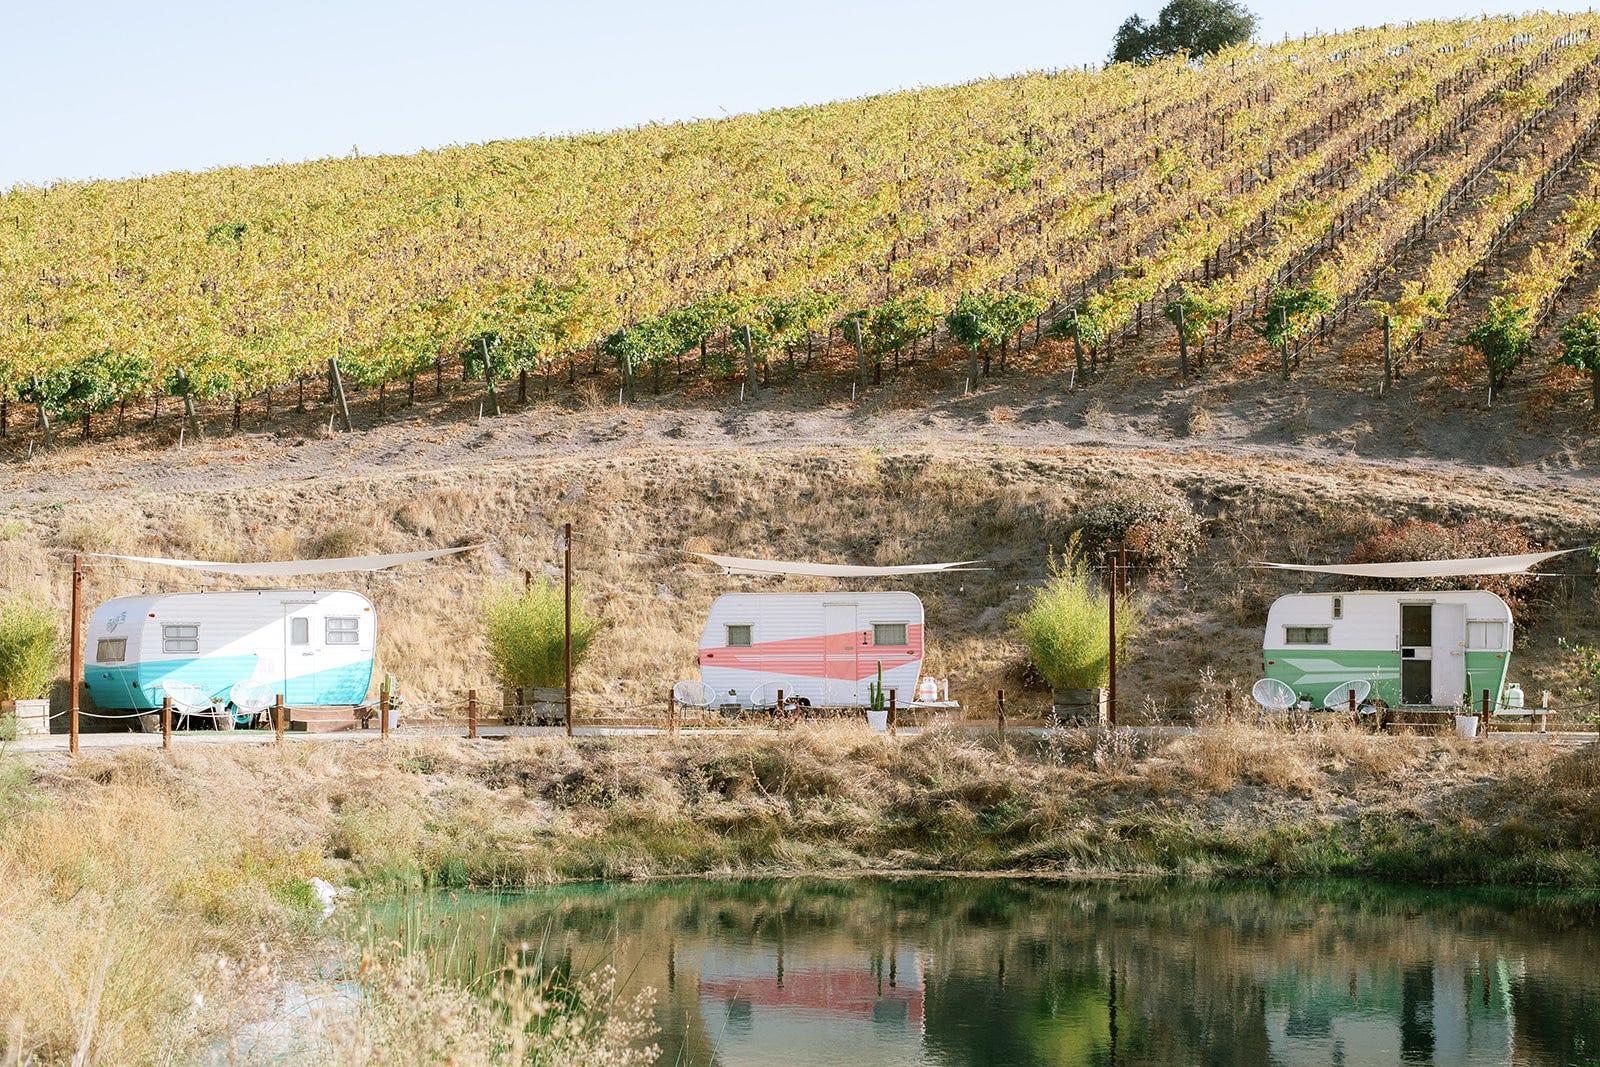 A Vintage Trailer Campsite In A Secluded California Vineyard Comes With A Private Swimming Dock And Is Offering Weekend Buyouts Starting At $3000. Take A Look Inside. photo